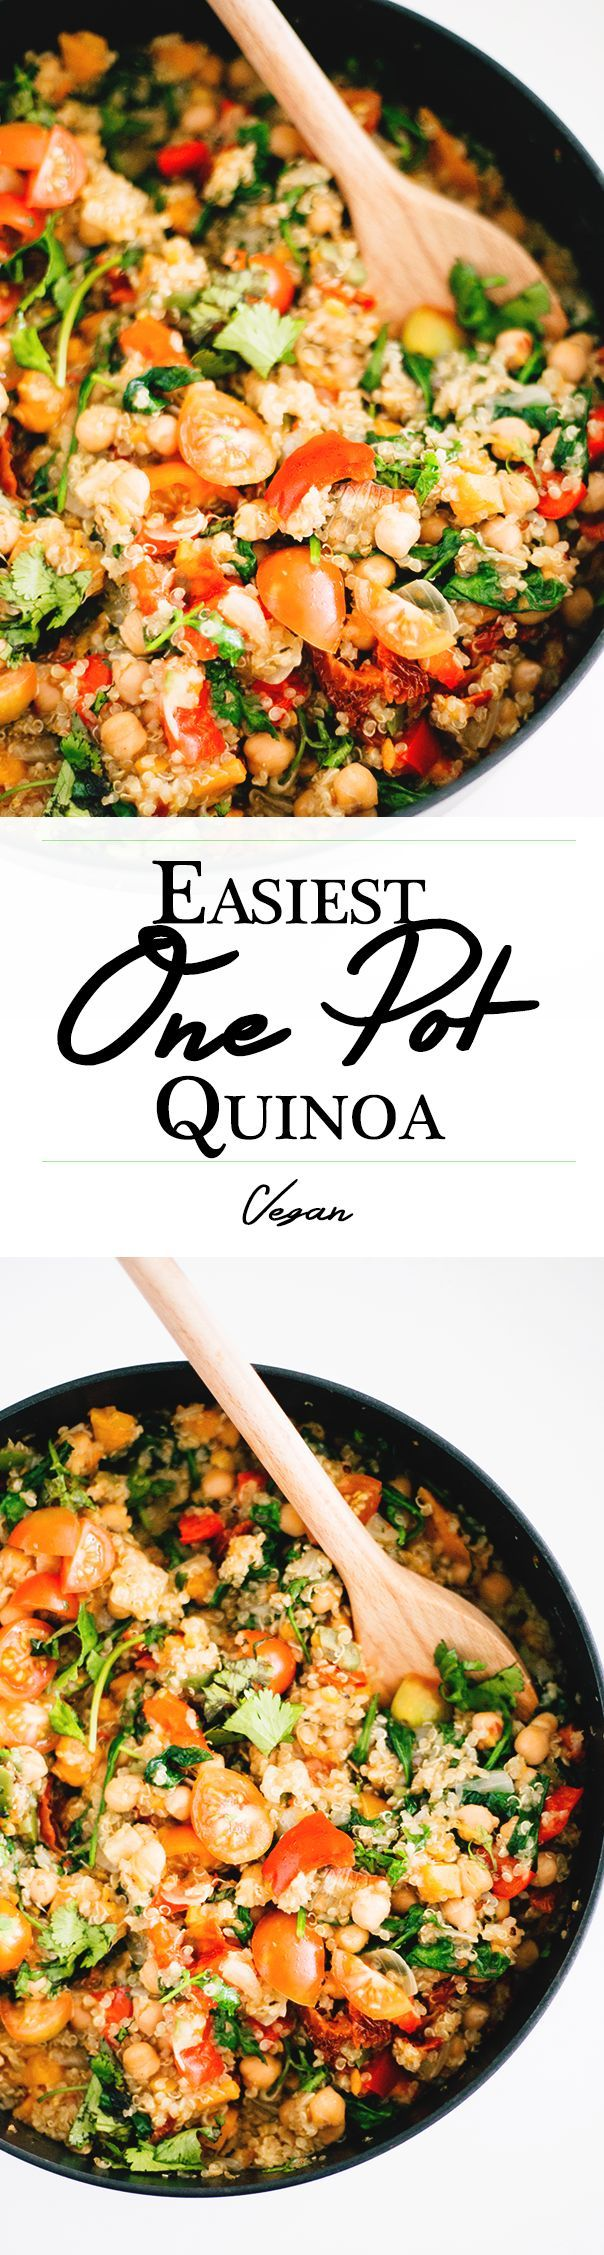 Quinoa recipe!                                                                                                                                                                                 More